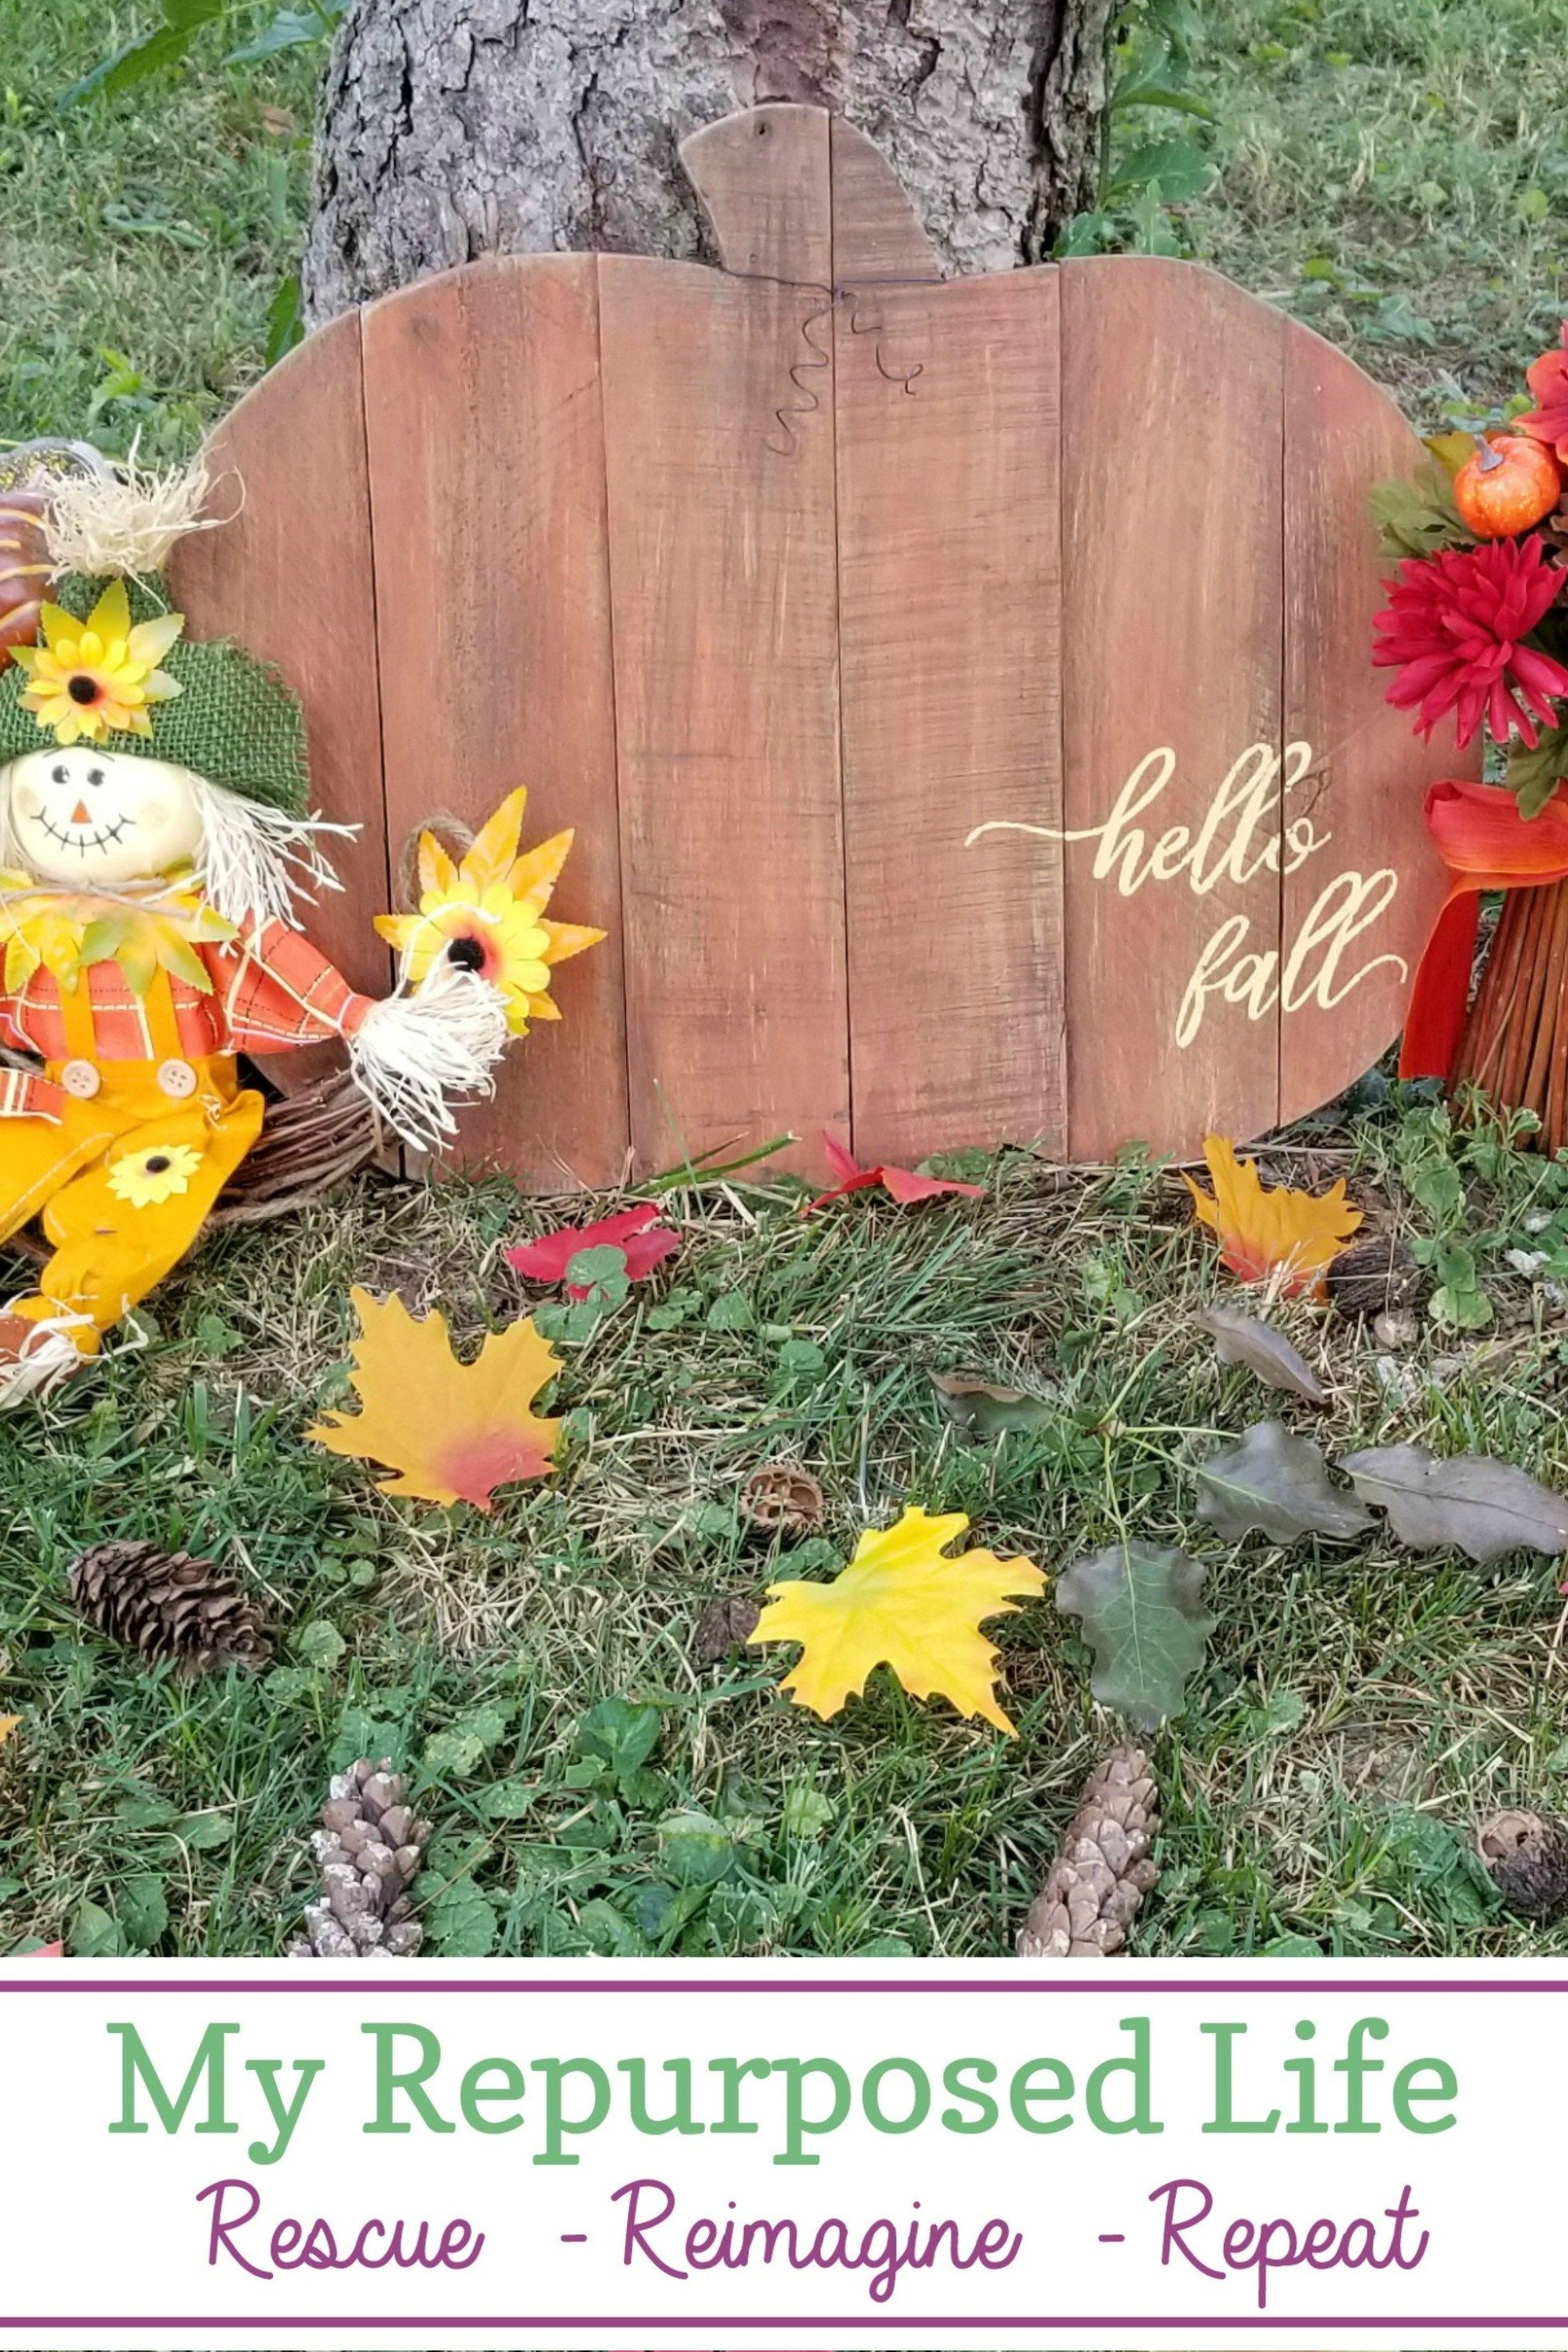 Hello Fall Rustic Pumpkin Sign Hello Fall Rustic Pumpkin Sign made from pallet boards!